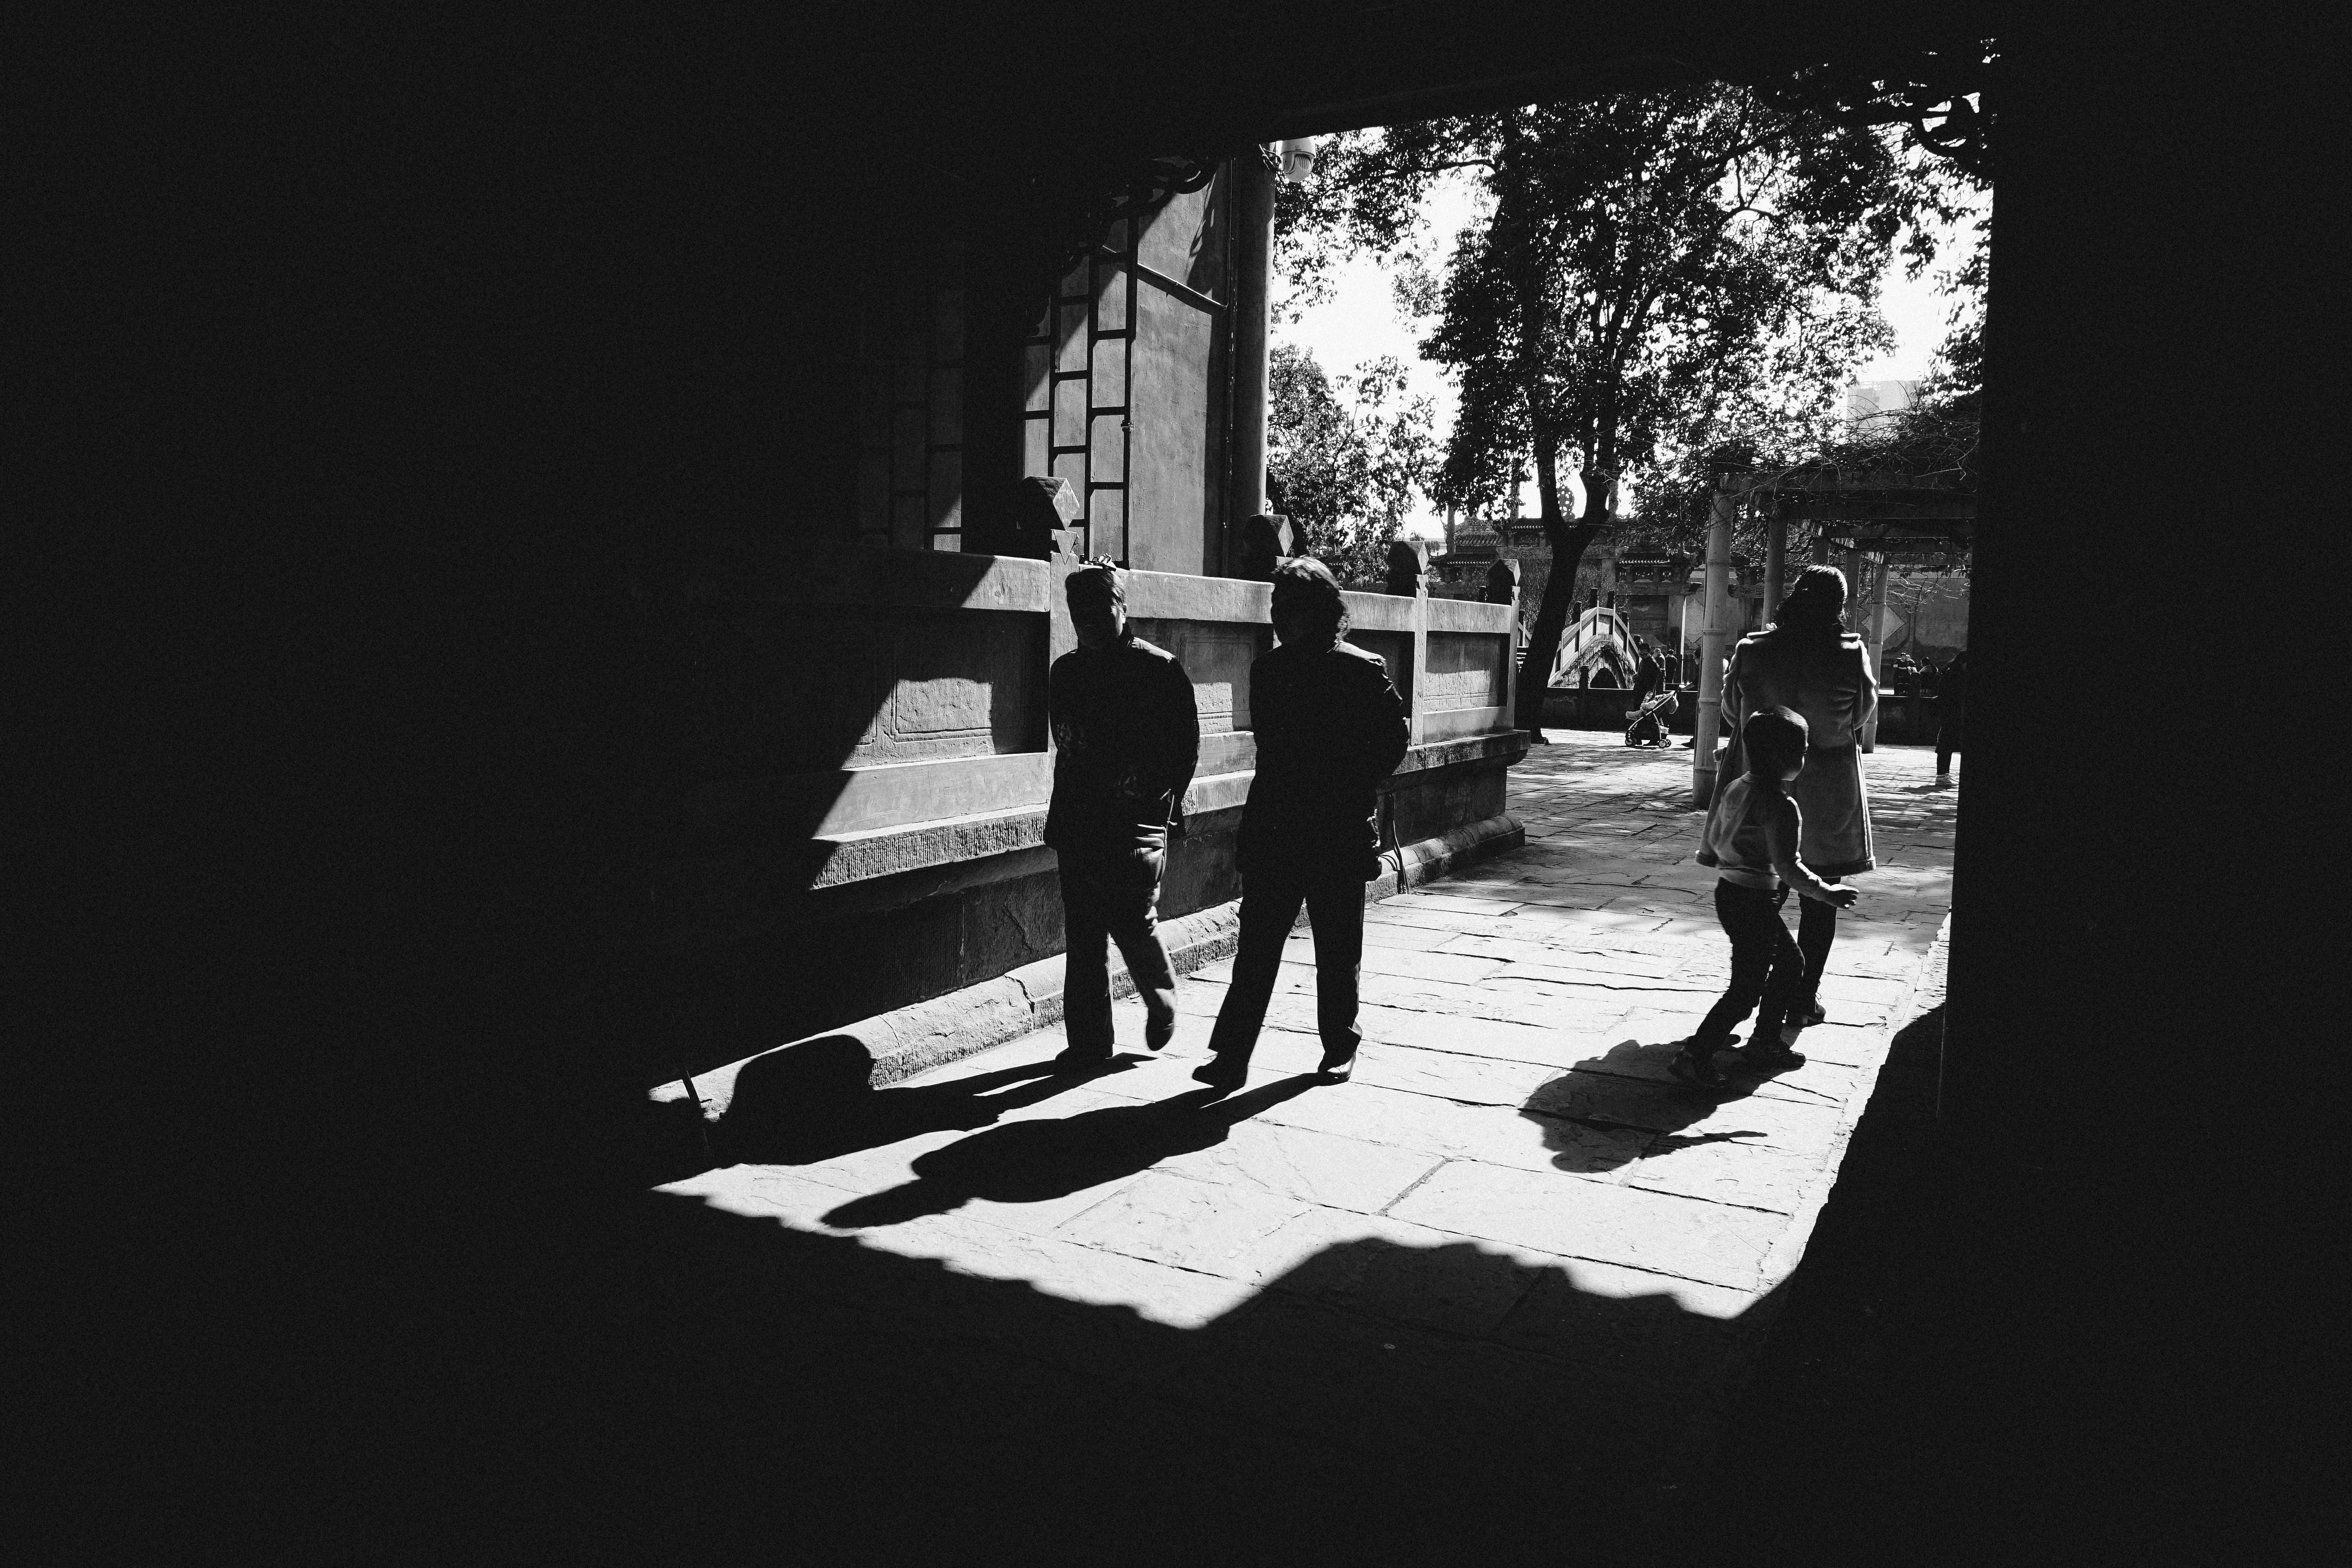 grayscale photography of four persons standing near building